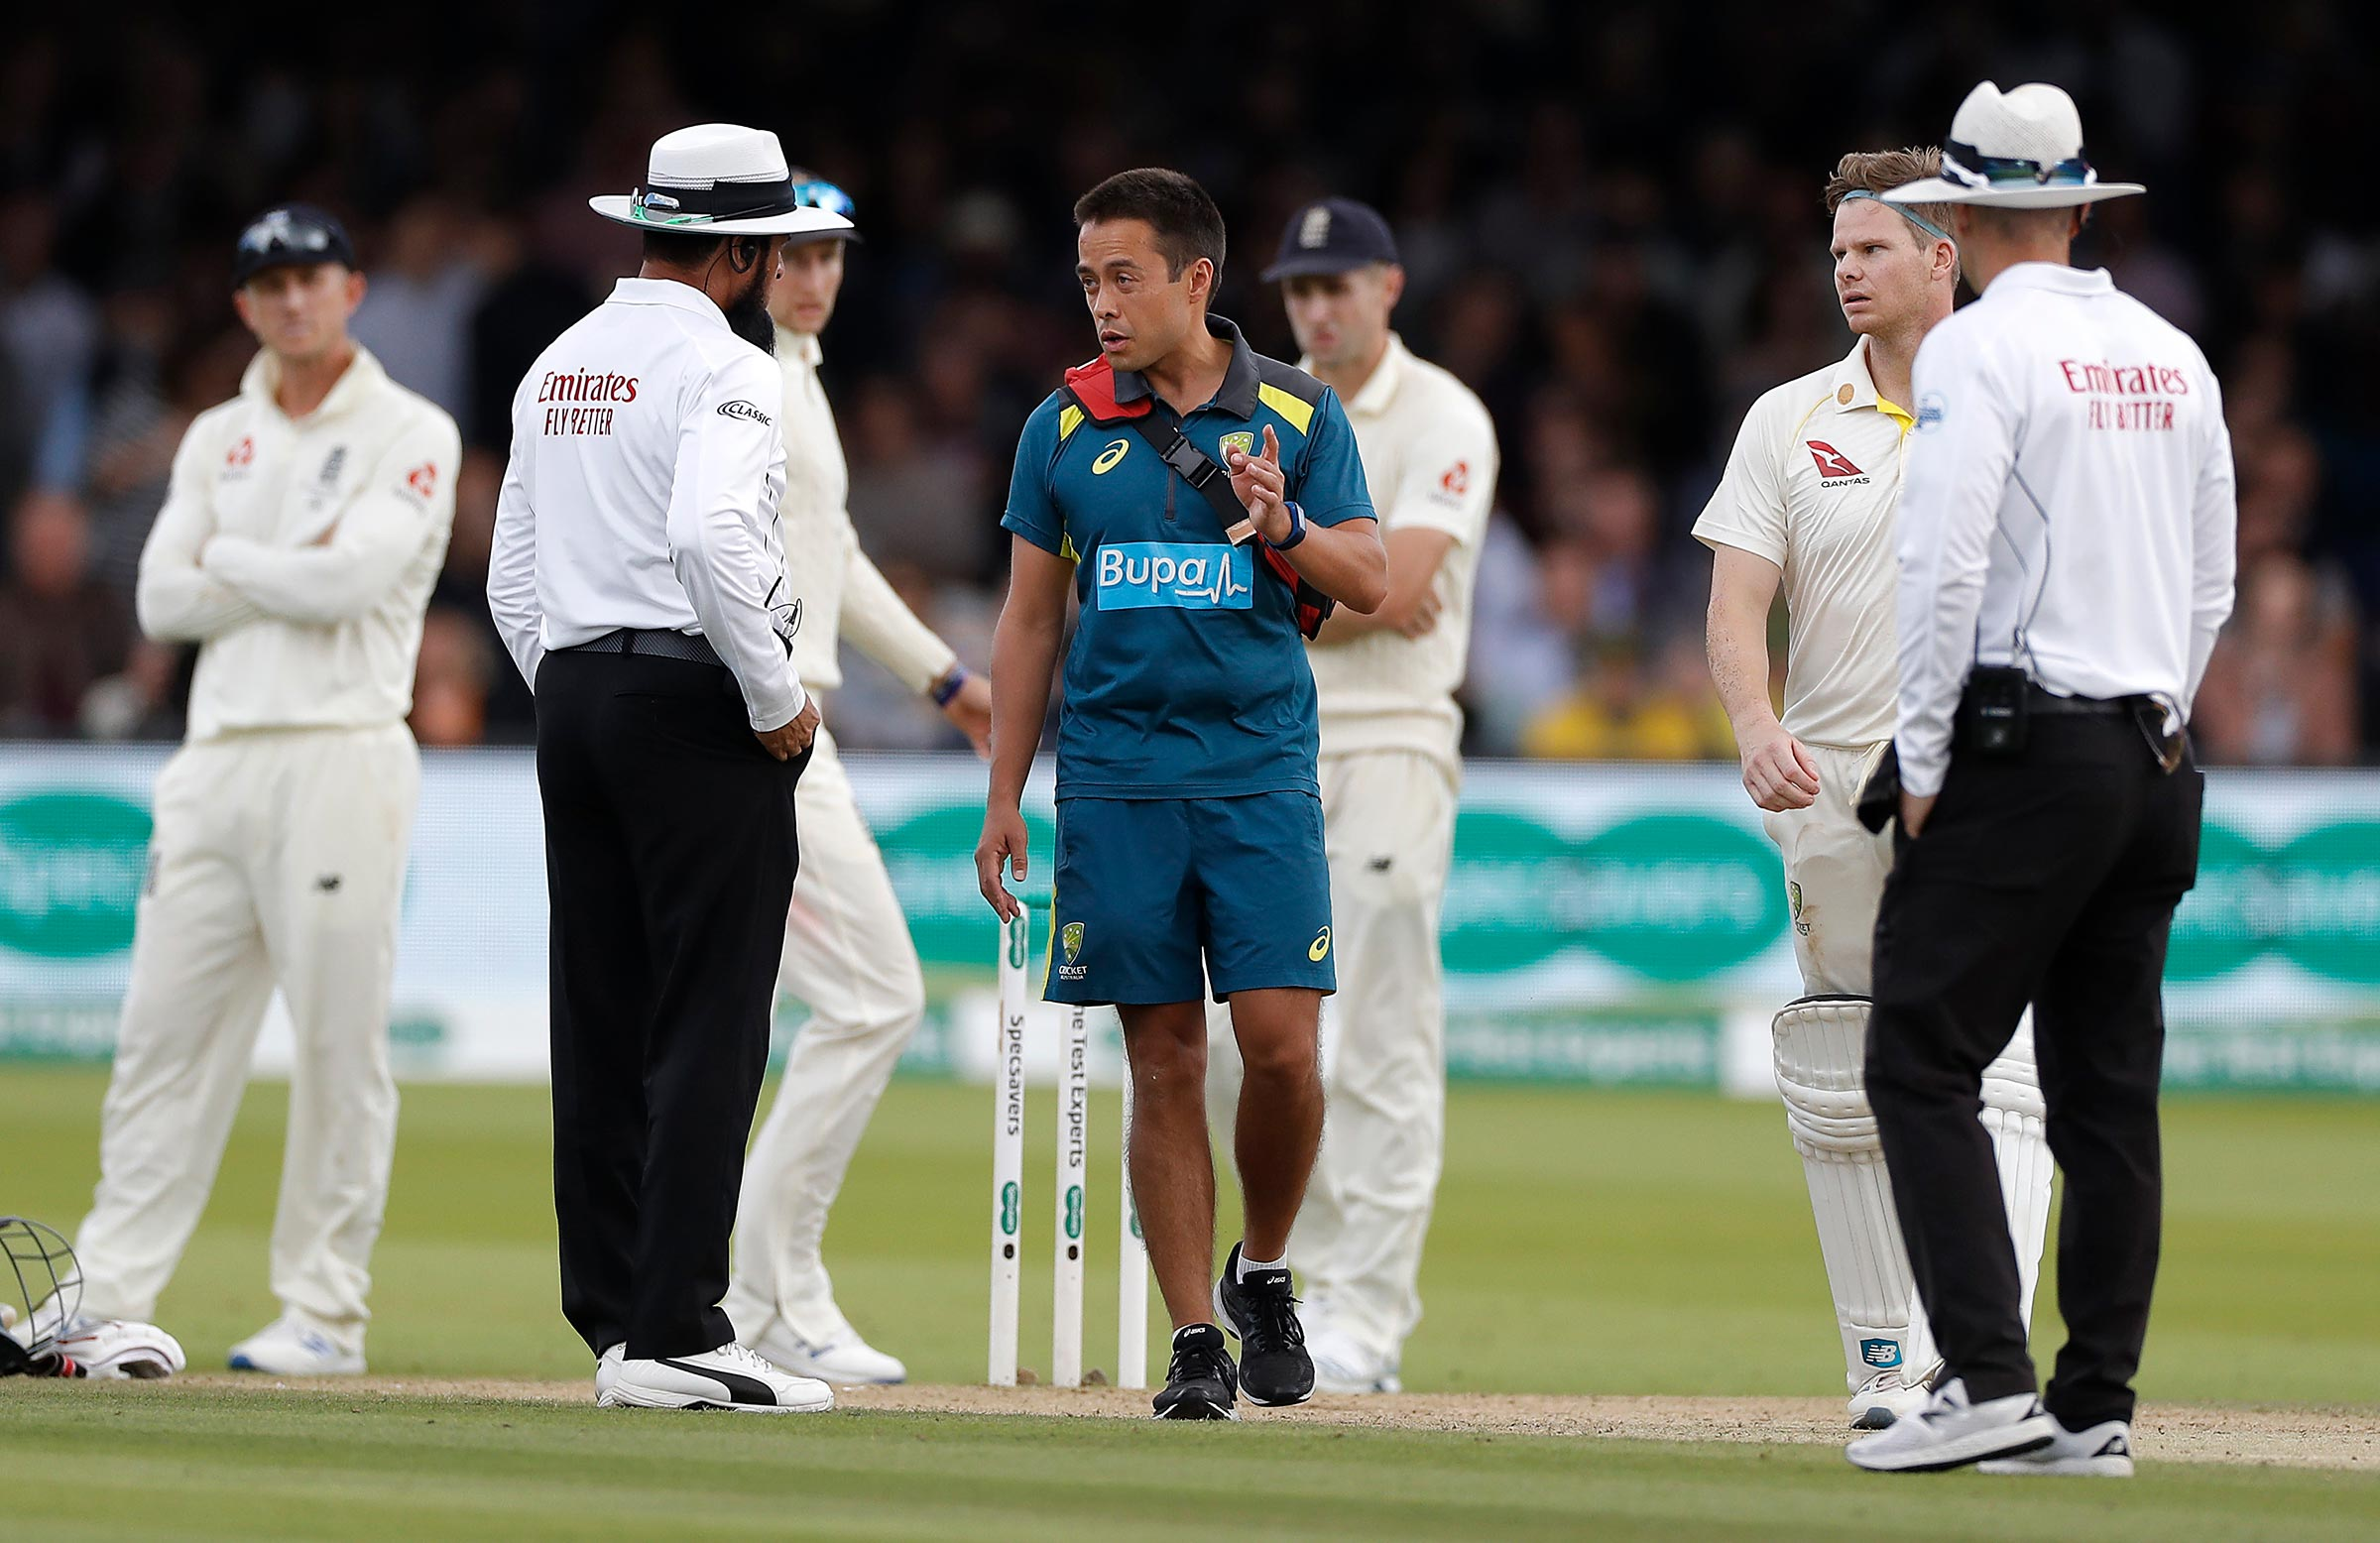 Dr Saw speaks to umpires at Lord's on Saturday // Getty